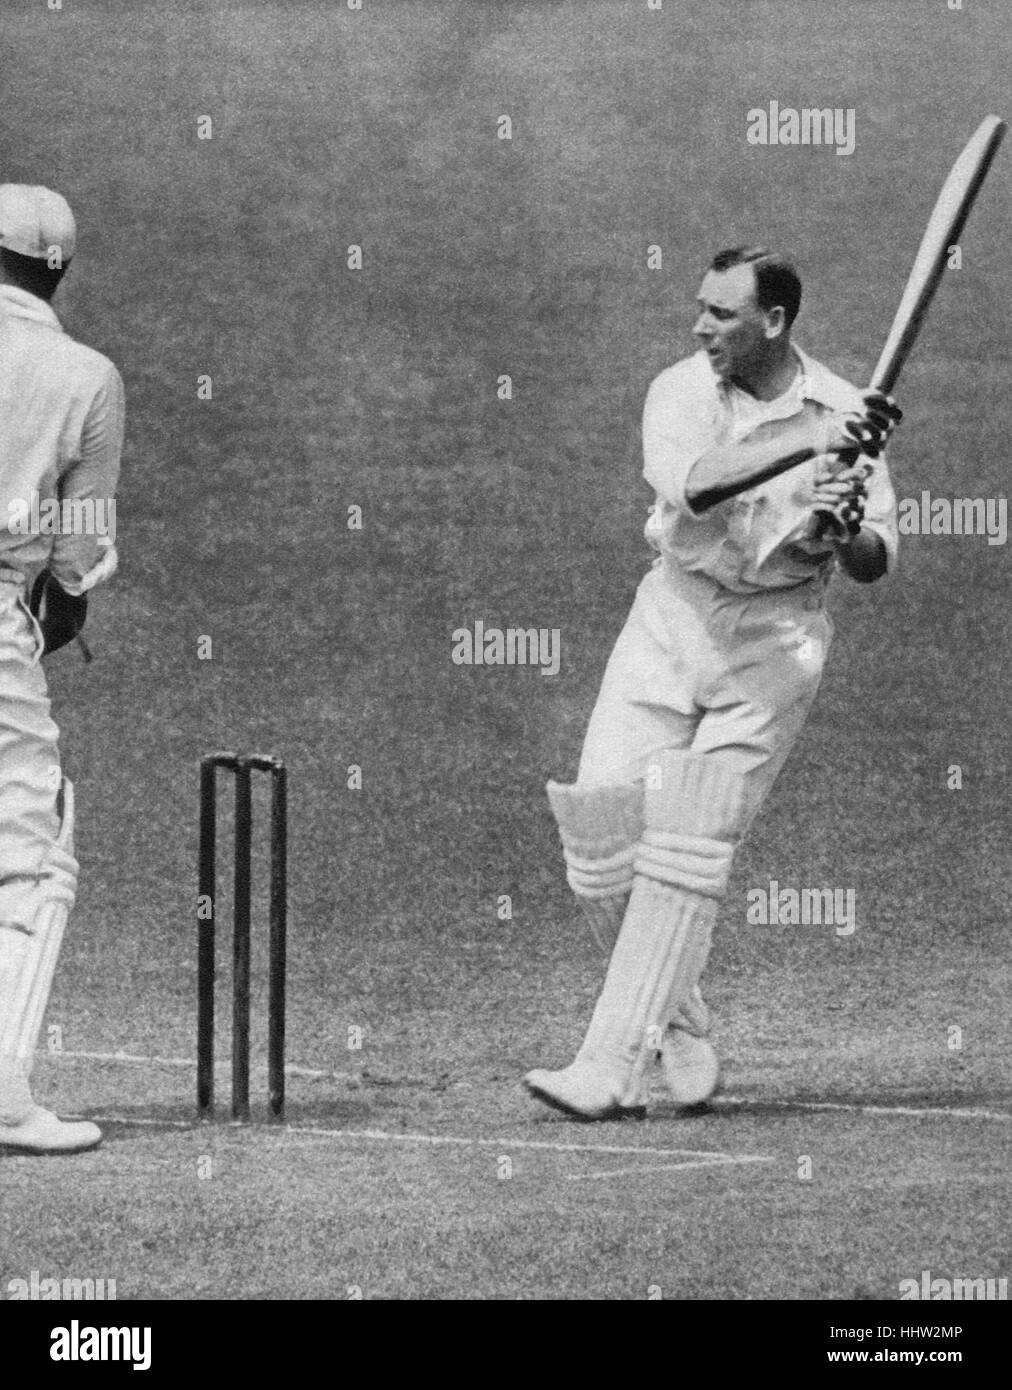 Jack Hobbs (16 December 1882 – 21 December 1963), England cricketer, making his hundredth century in first-class - Stock Image